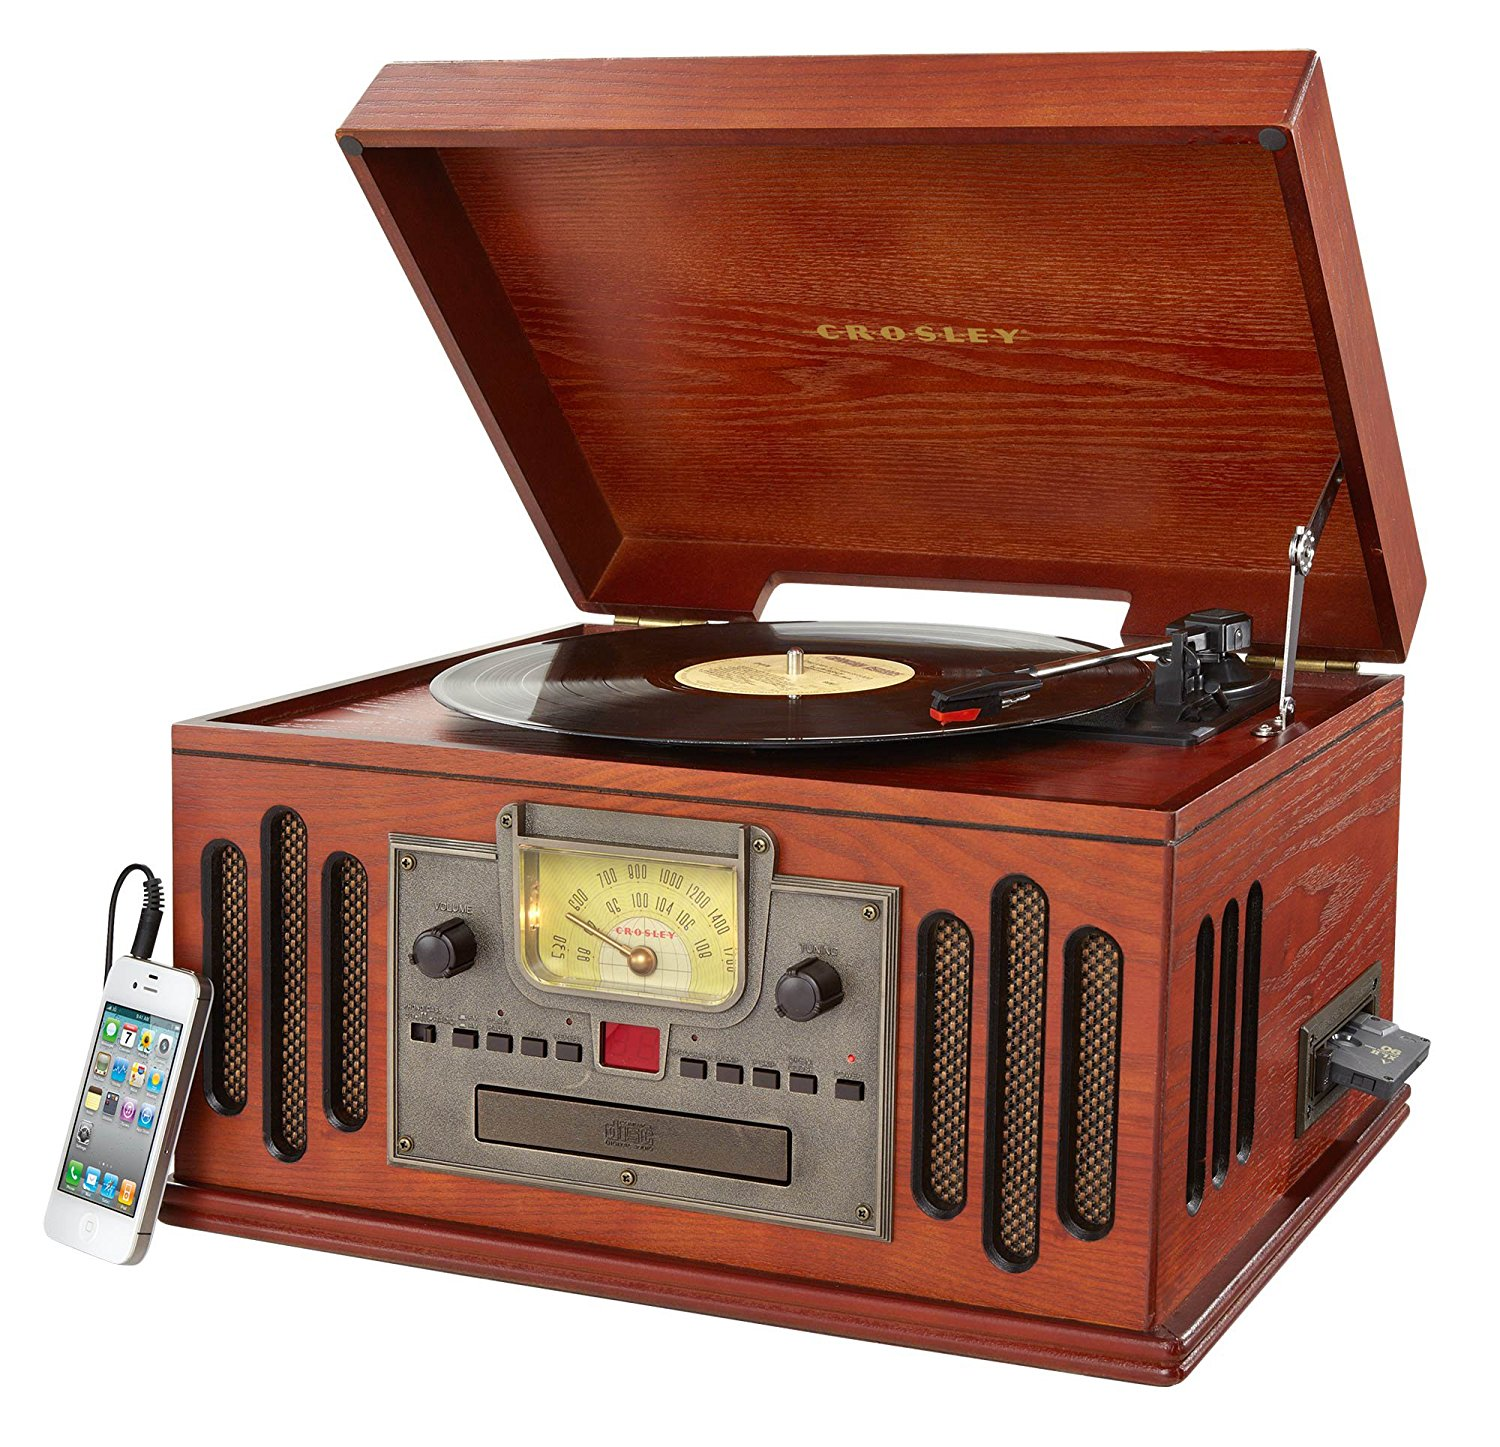 Record Player clipart tape player Com: CR704C Player PA &